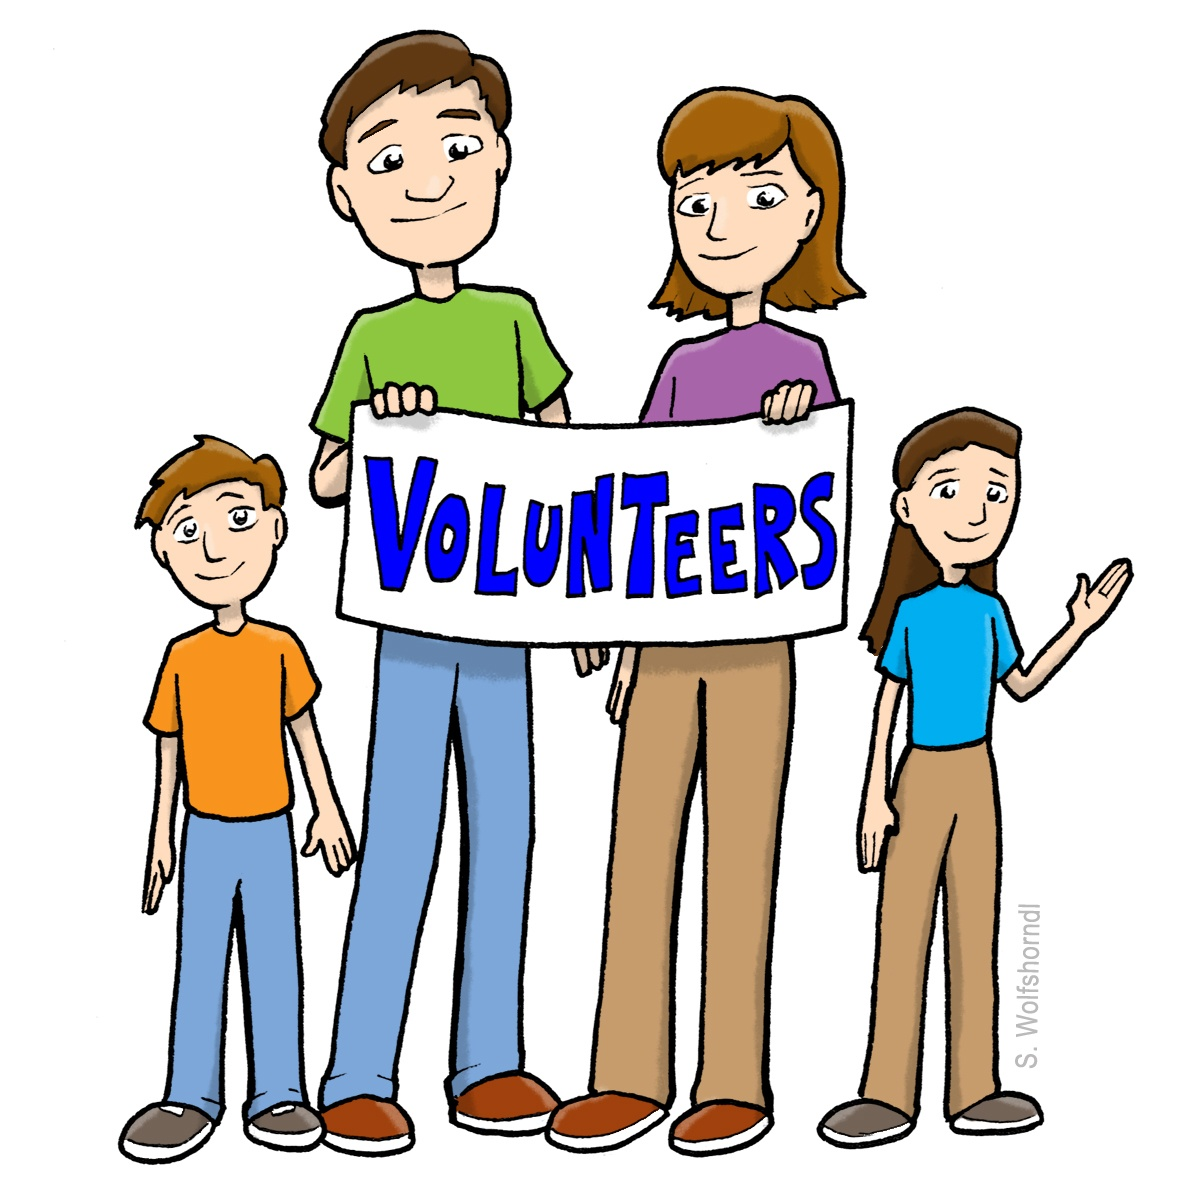 Free Volunteering Cliparts, Download Free Clip Art, Free Clip Art on.